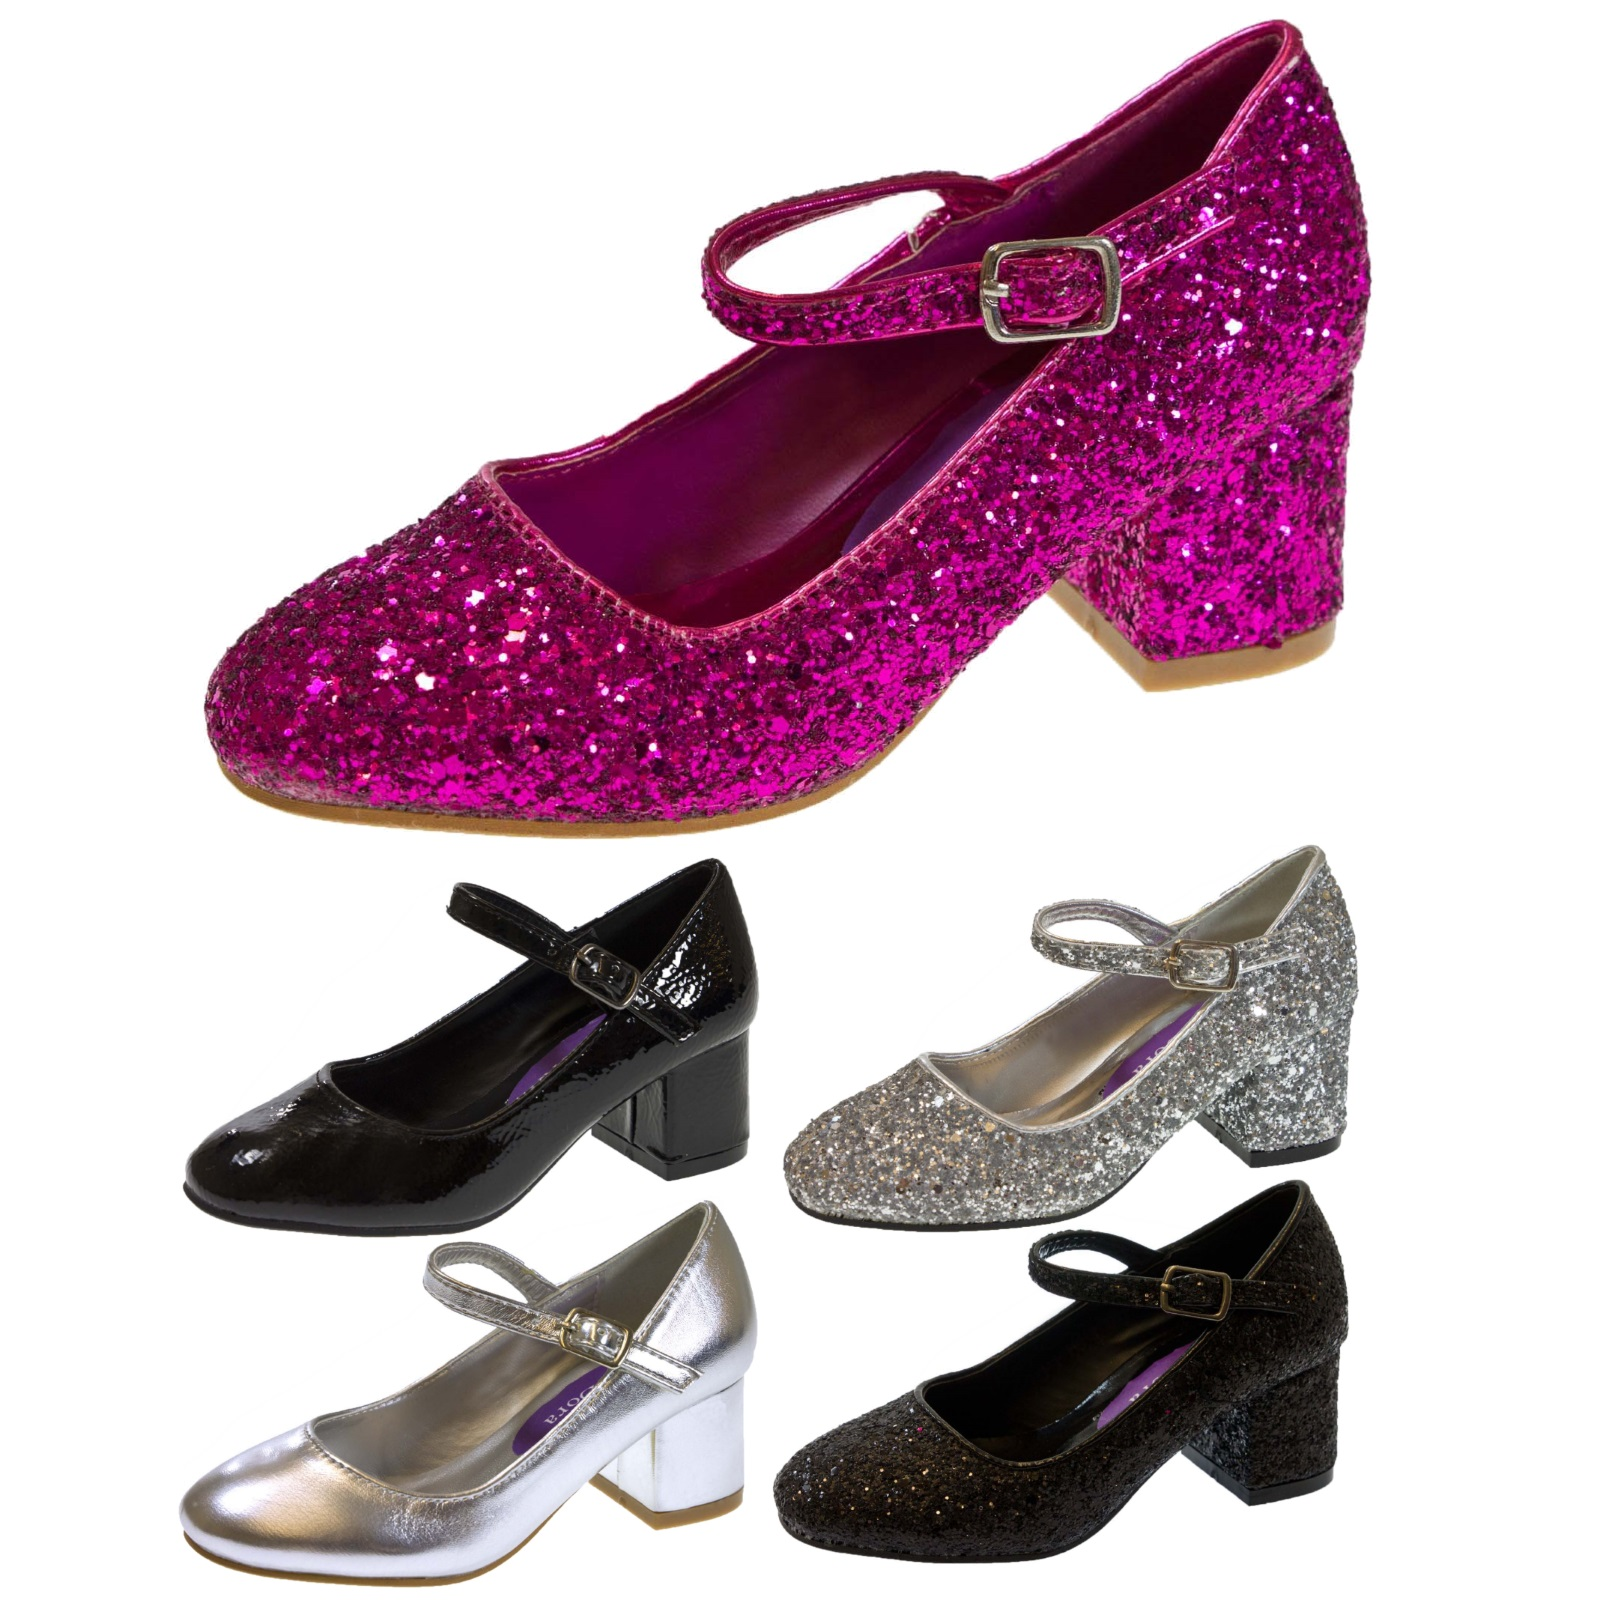 Silver Patent High Heeled Shoes And Matching Clutch Size